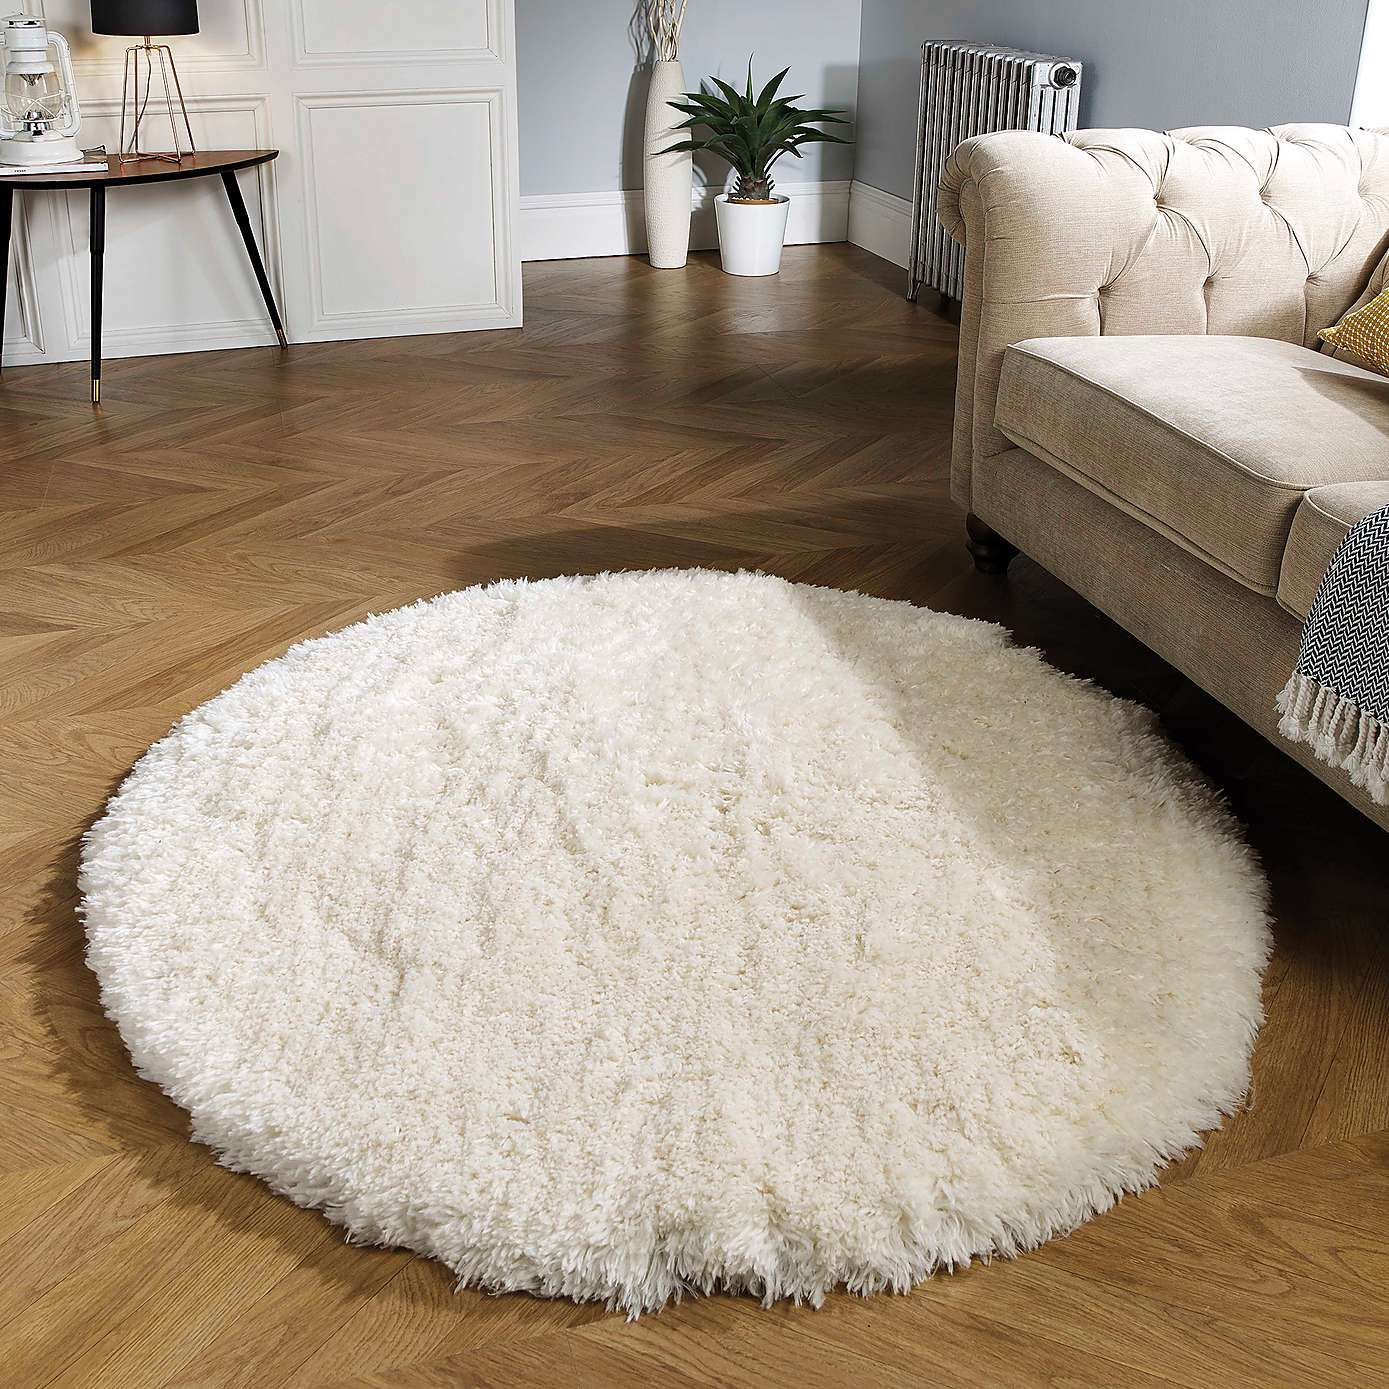 Ivory Polar Shaggy Circle Rug Dunelm Small Bedroom Rugs Circle Rug Rugs In Living Room